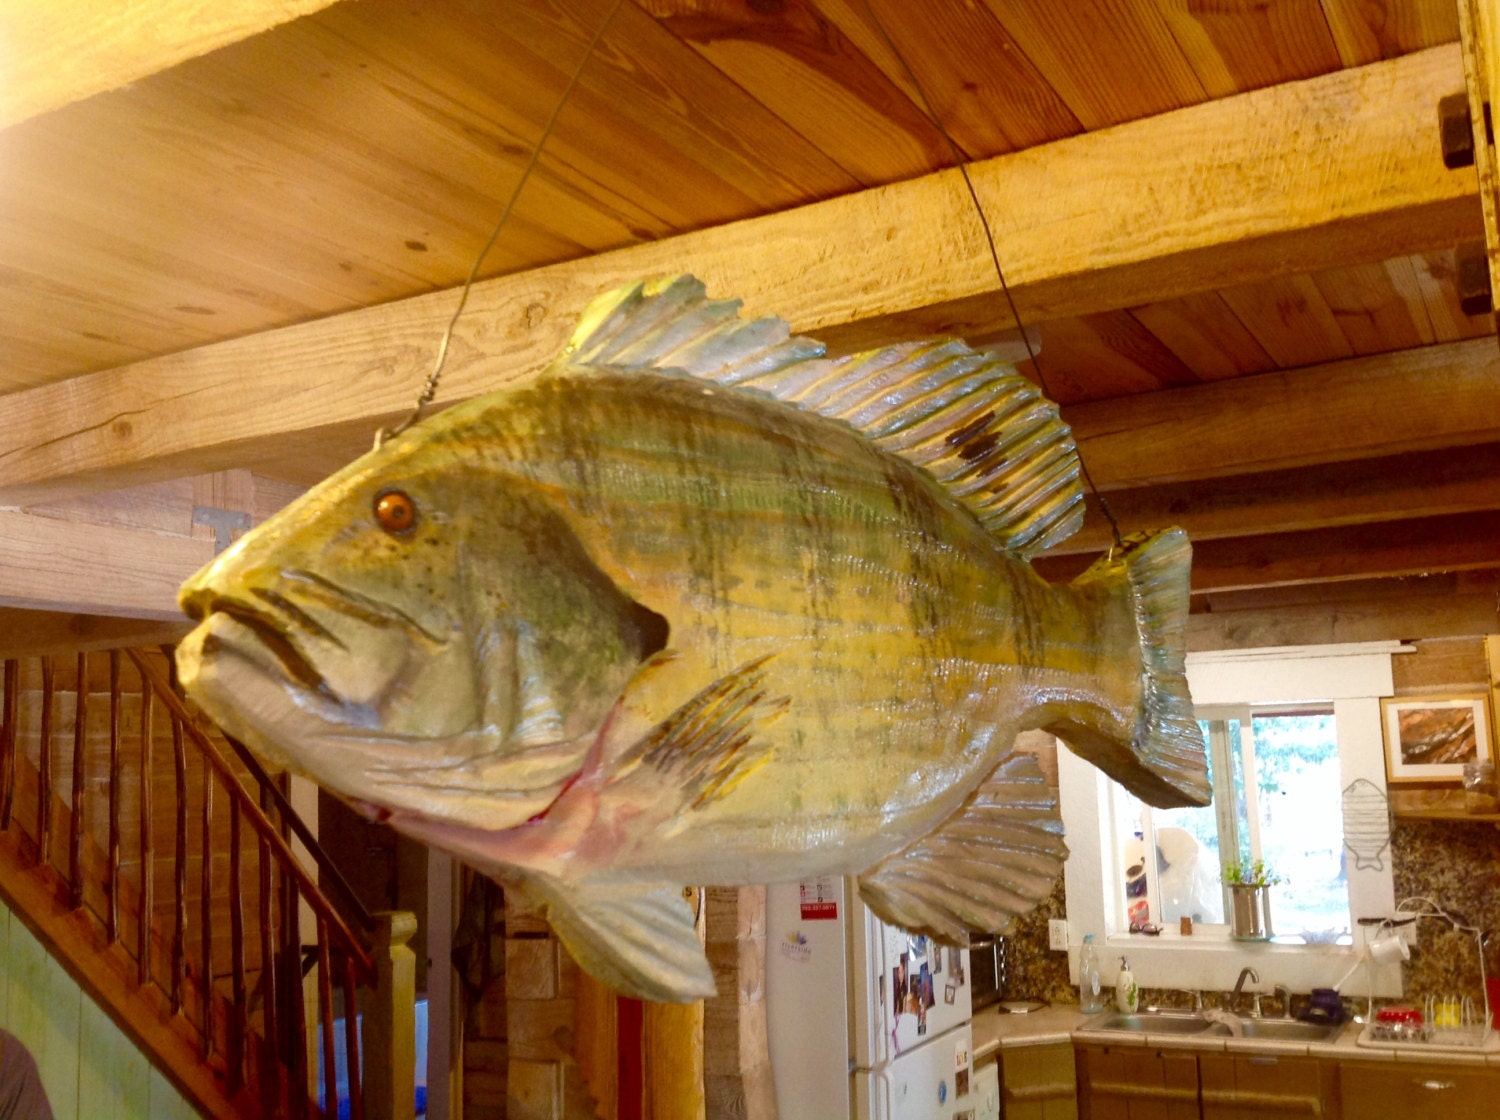 Blue gill mobile chainsaw wooden fish carving two